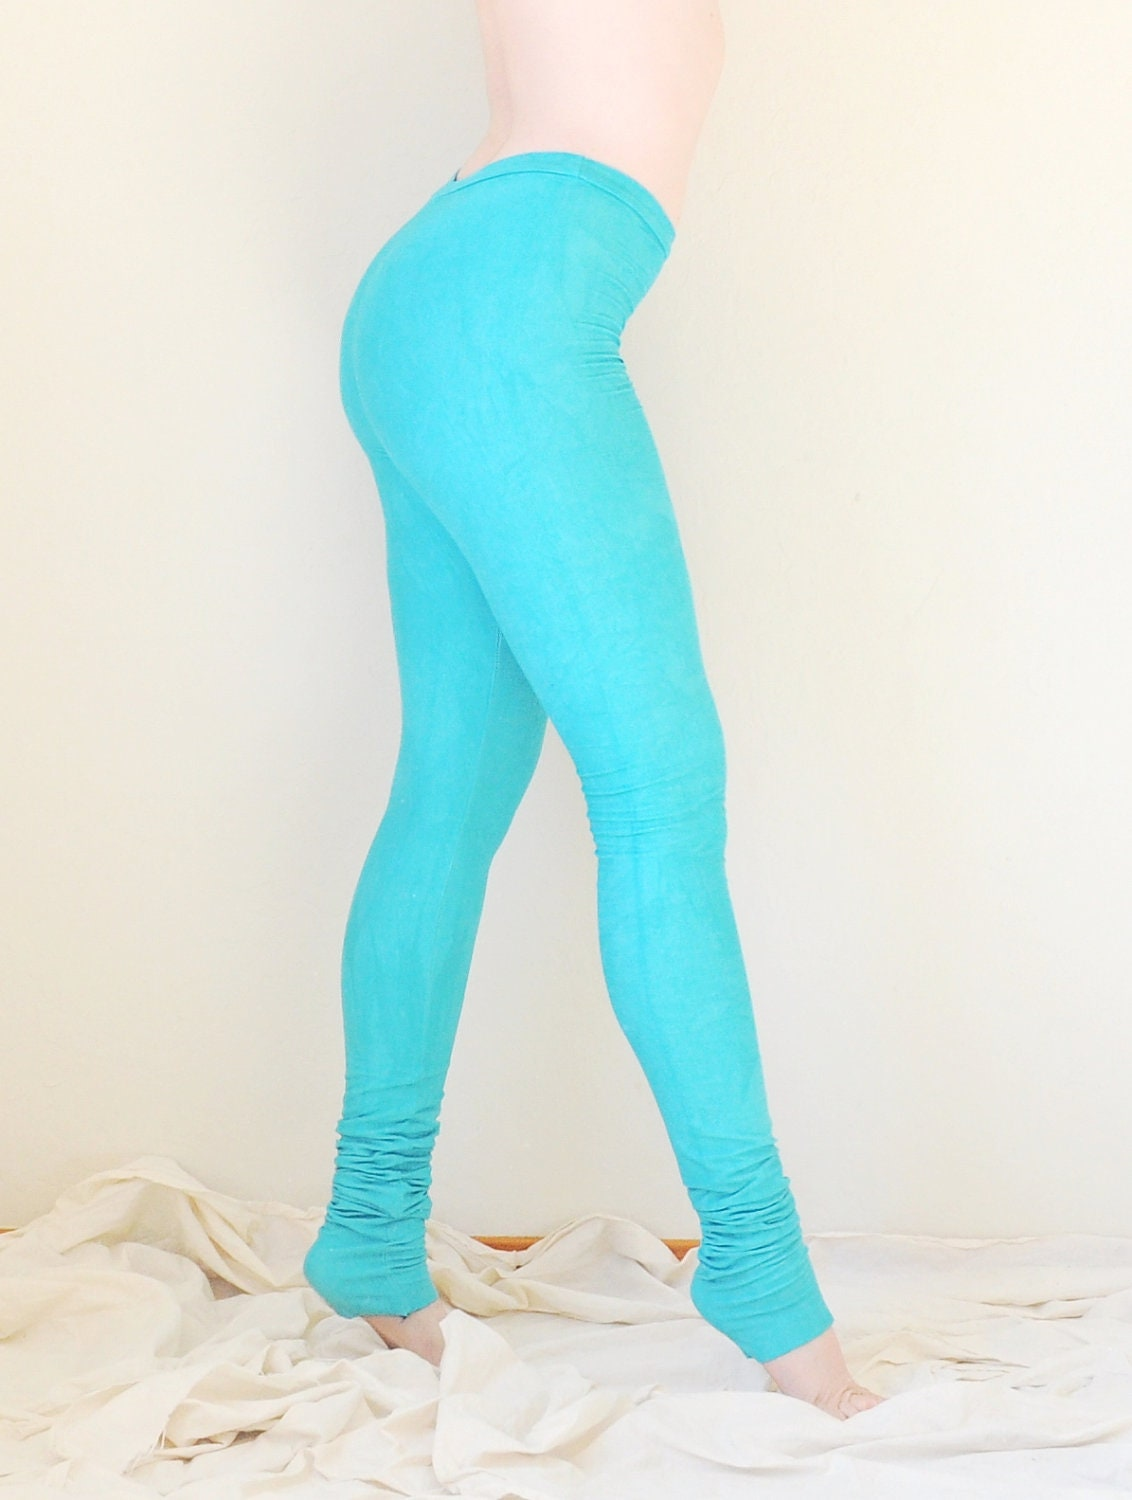 Hand Dyed Leggings in Stretch Cotton - Extra Long Leggings - Dyed Tights - Choose Your Colors - Made to Order - Sizes XS, S, M, L, XL - SewRed